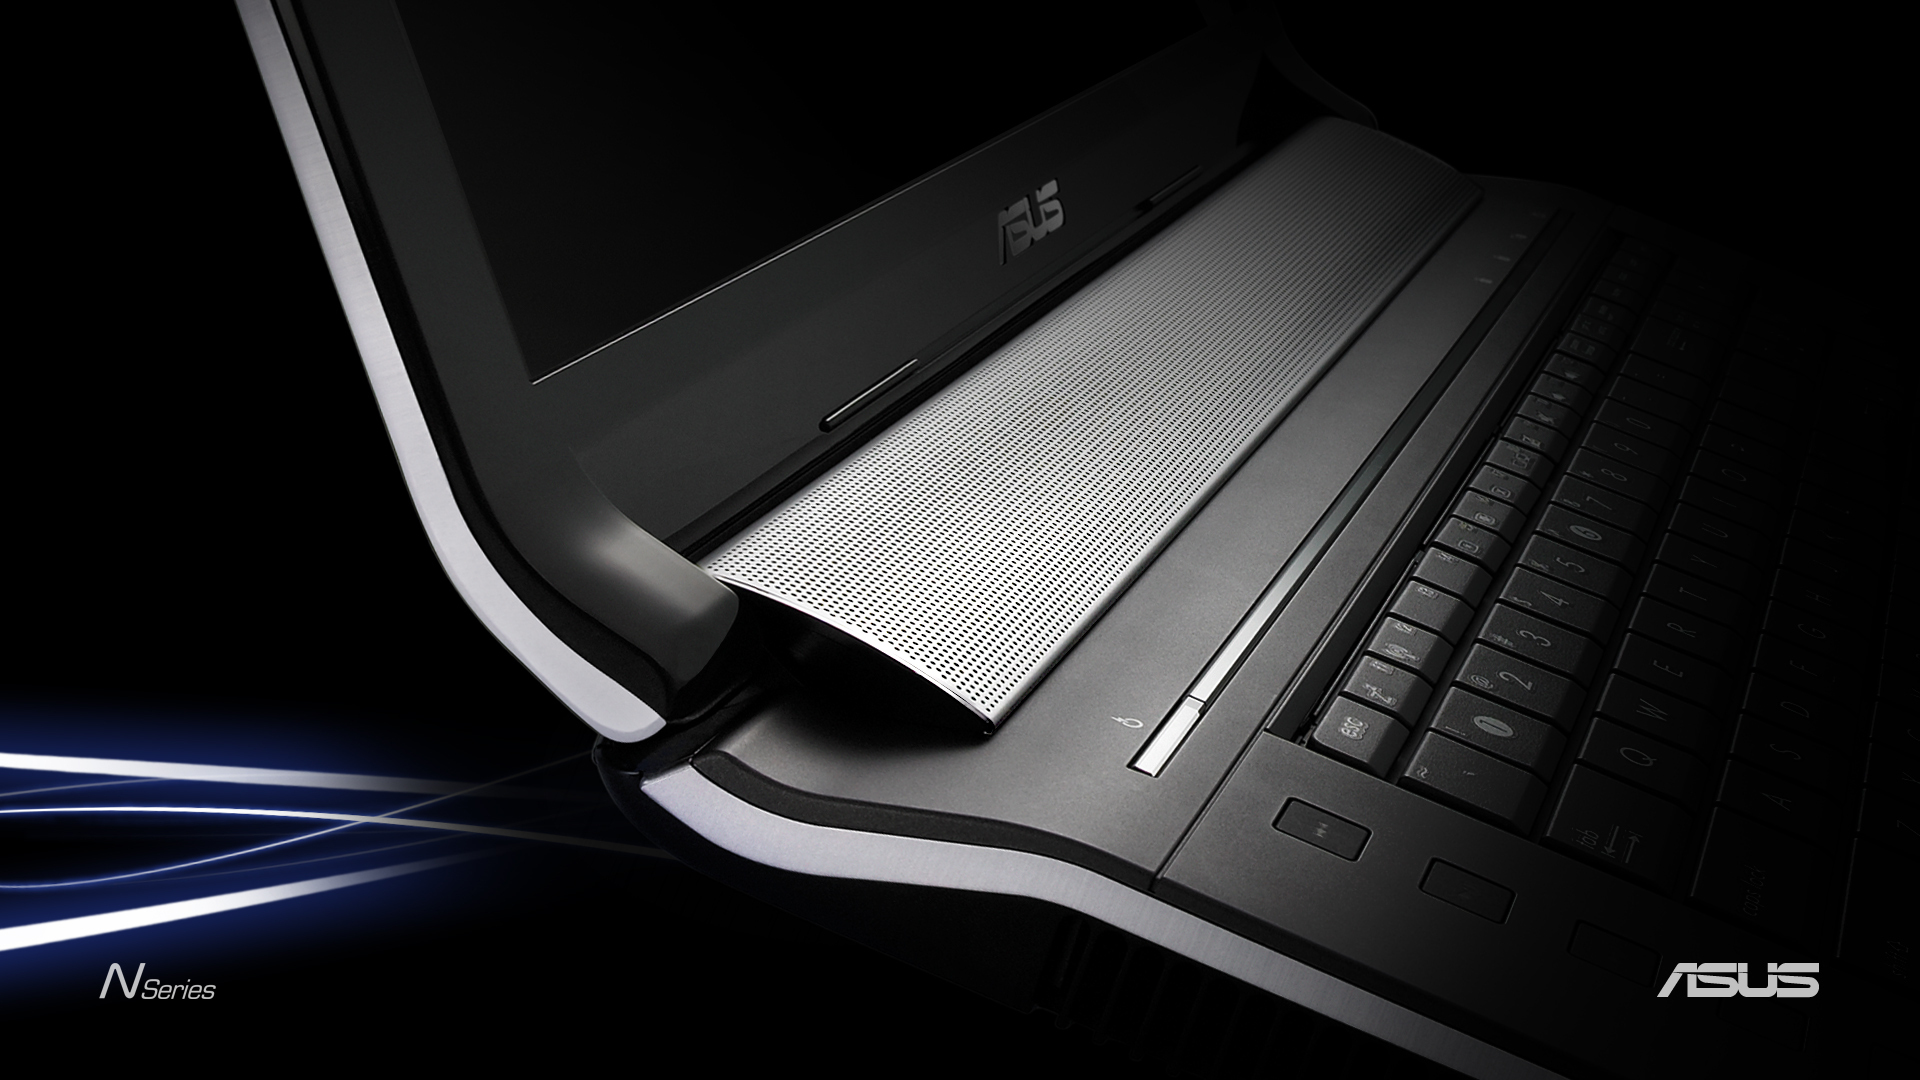 1920x1080 asus n series desktop pc and mac wallpaper - Asus x series wallpaper hd ...